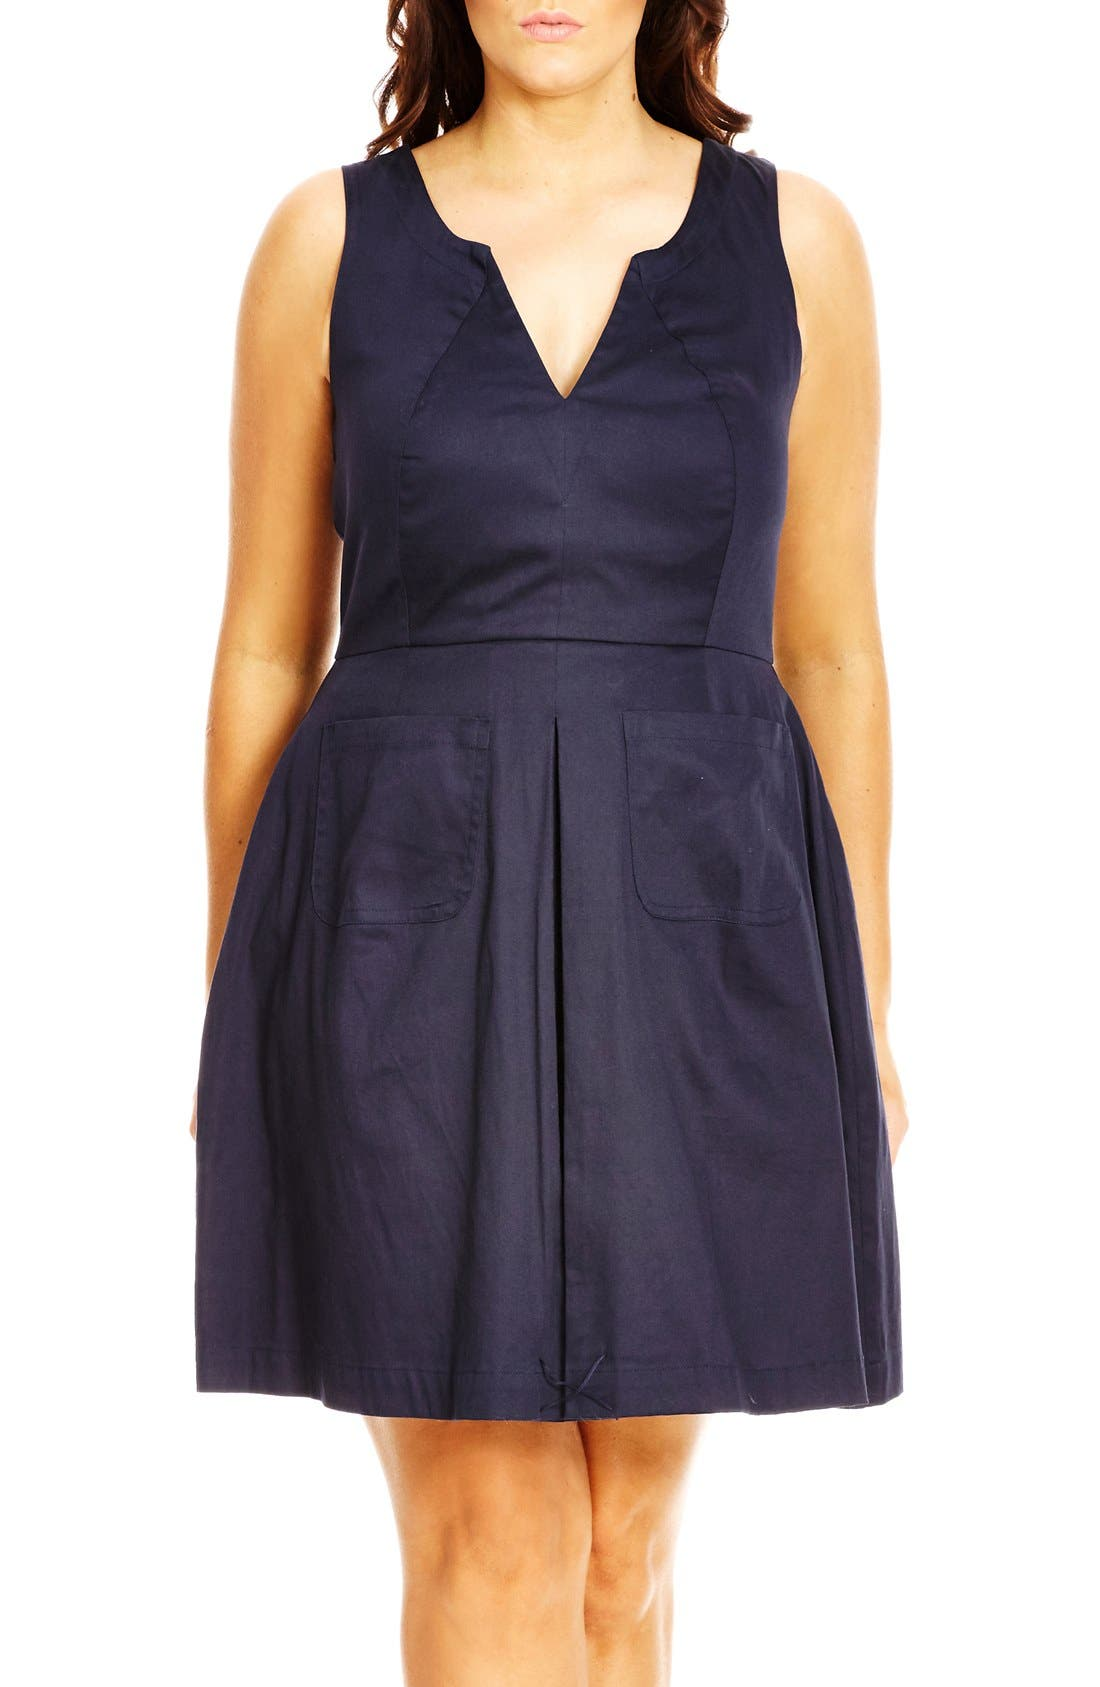 Alternate Image 1 Selected - City Chic 'Mod Madness' Notch Neck Fit & Flare Dress (Plus Size)